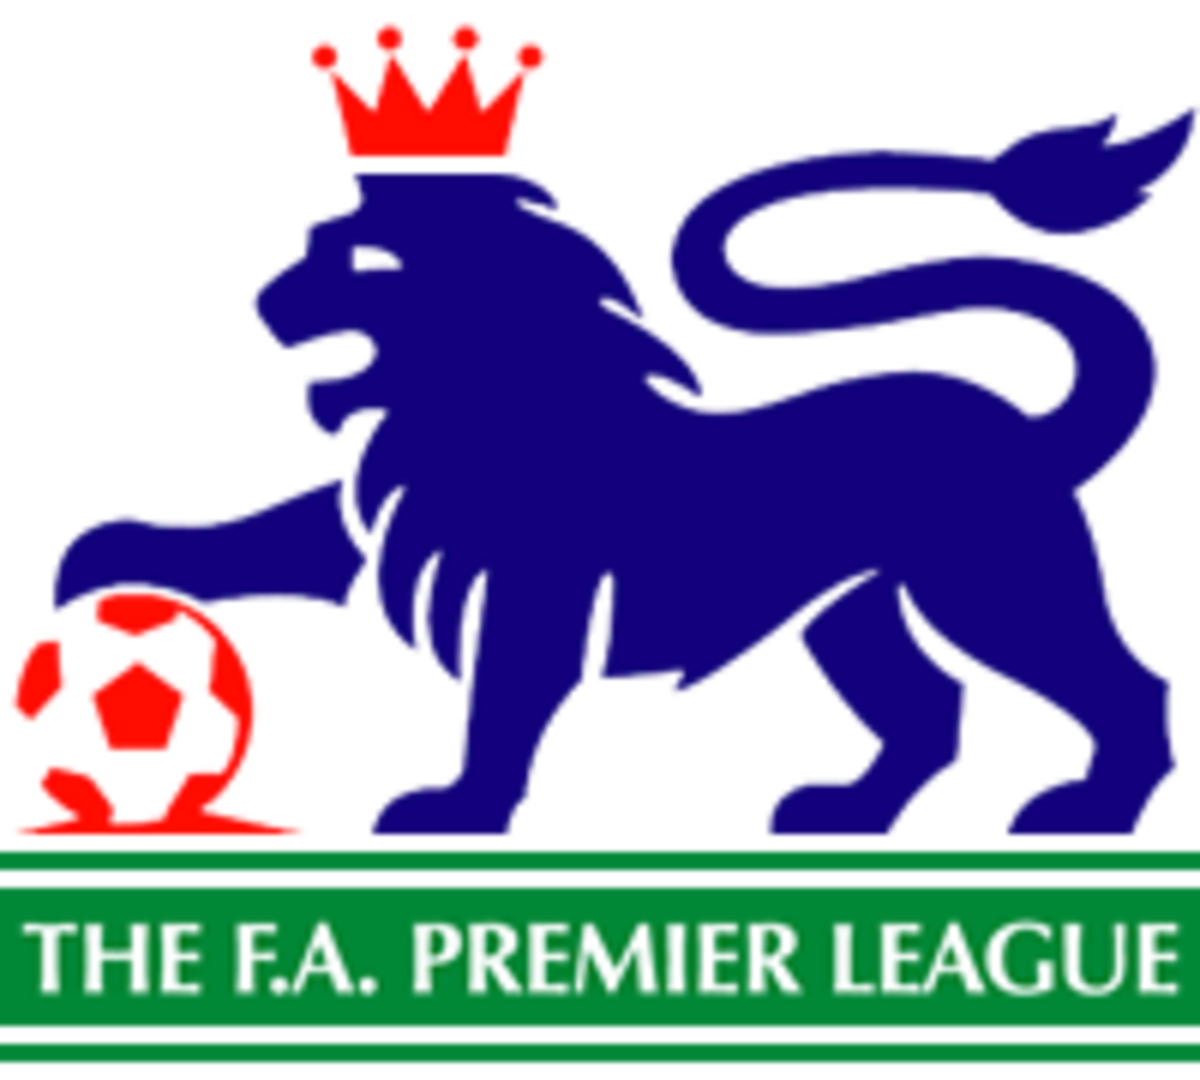 The new FA Premier League signalled the end of the old First Division that had existed since 1888, and marked the beginning of a whole new era in English football.